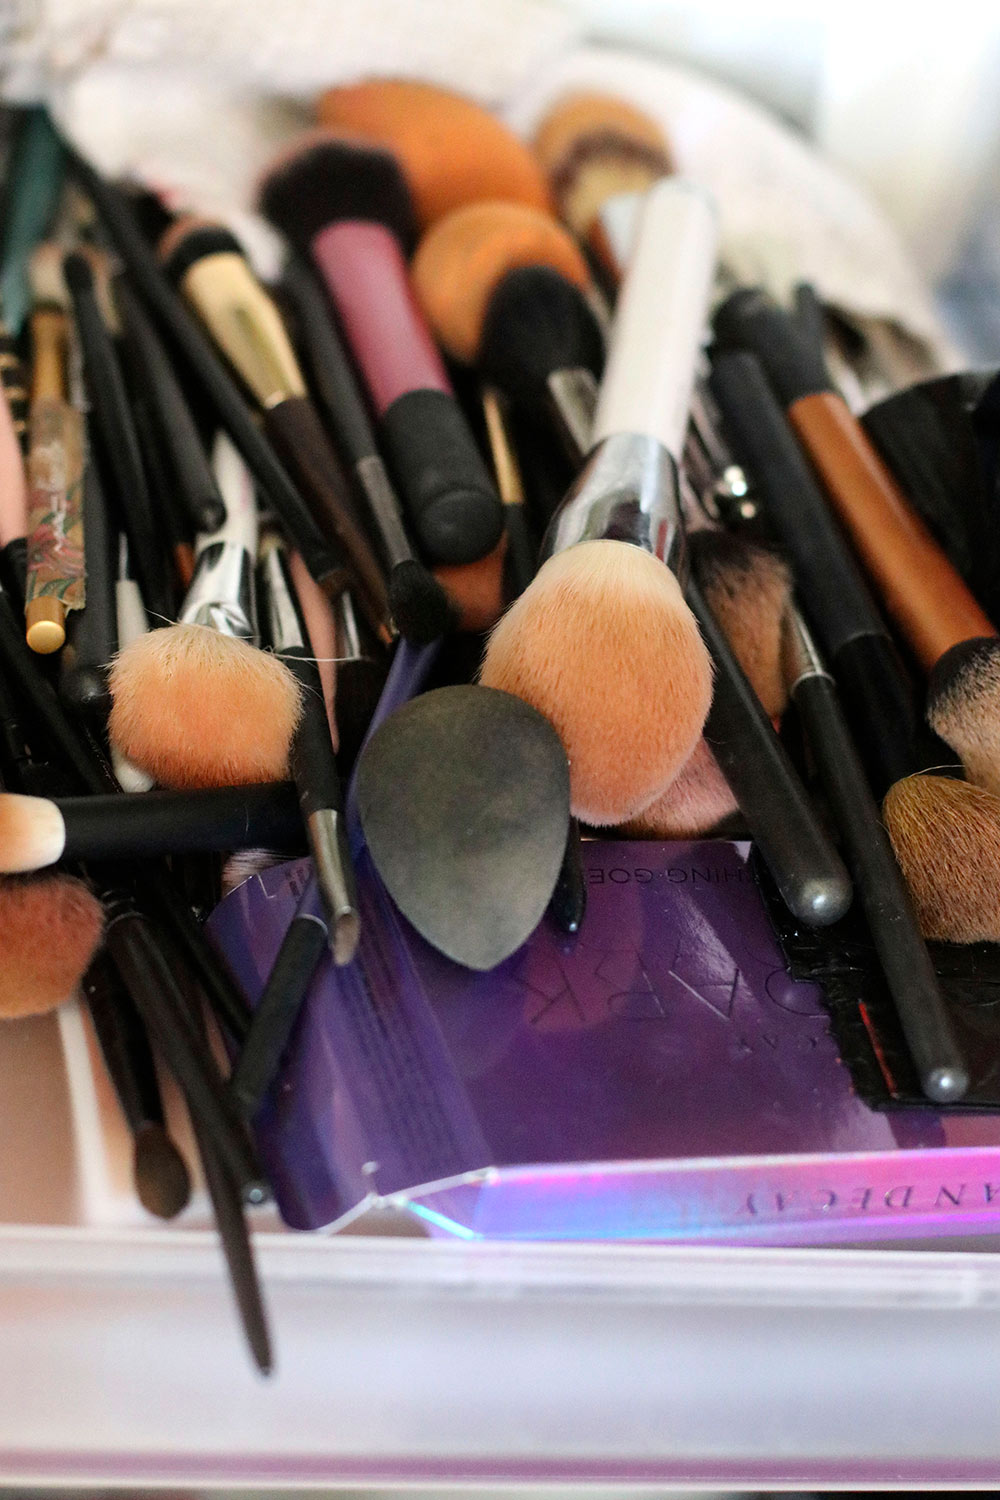 Dirty Makeup Brushes: Just For Fun Reviews, Swatches And Pictures On Makeup And